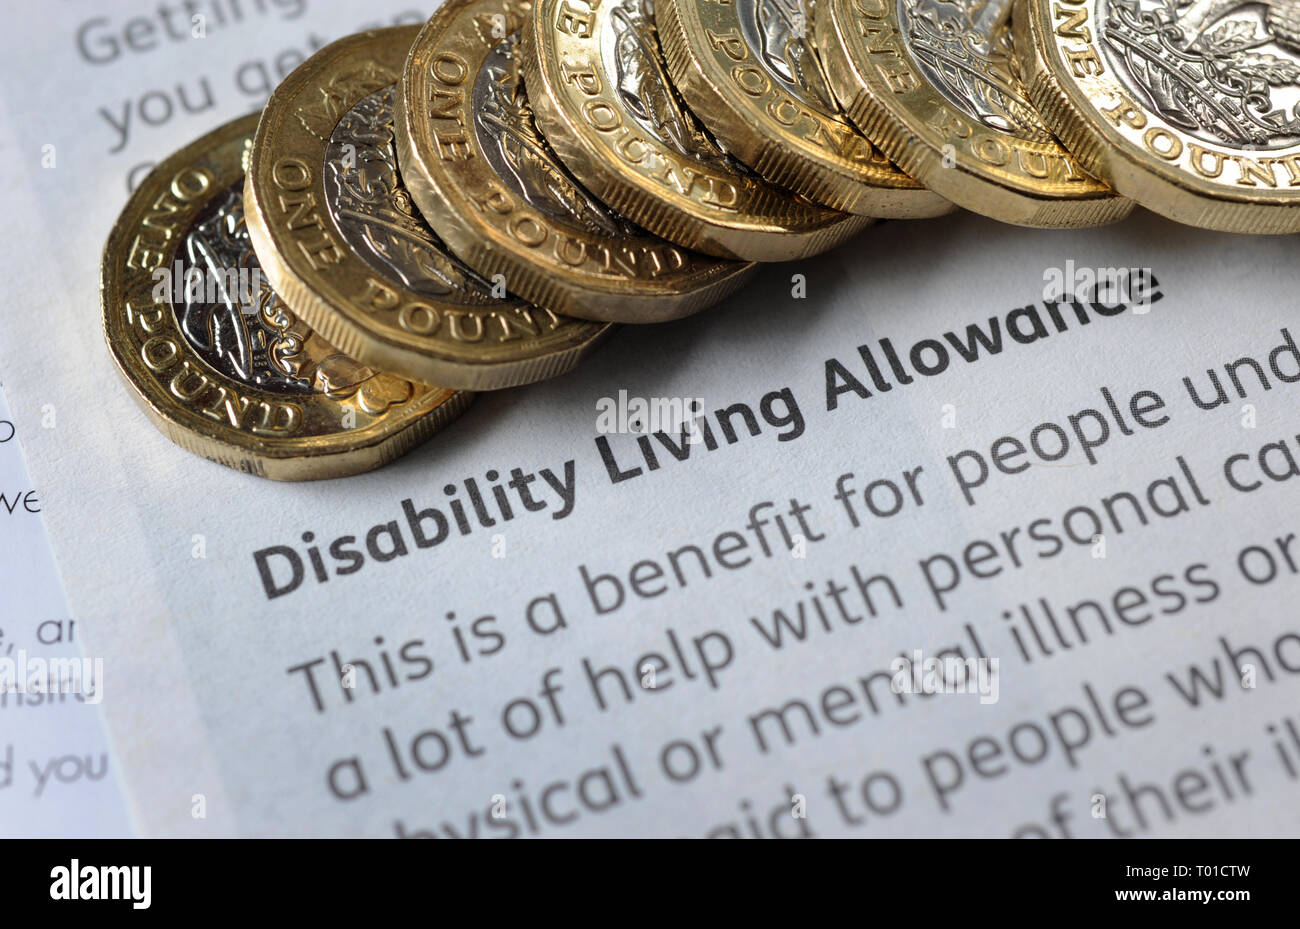 DWP  DISABILITY LIVING ALLOWANCE LEAFLET WITH ONE POUND COINS RE BENEFITS THE ELDERLY PENSIONERS LOW INCOME PENSION CREDIT ETC UK - Stock Image